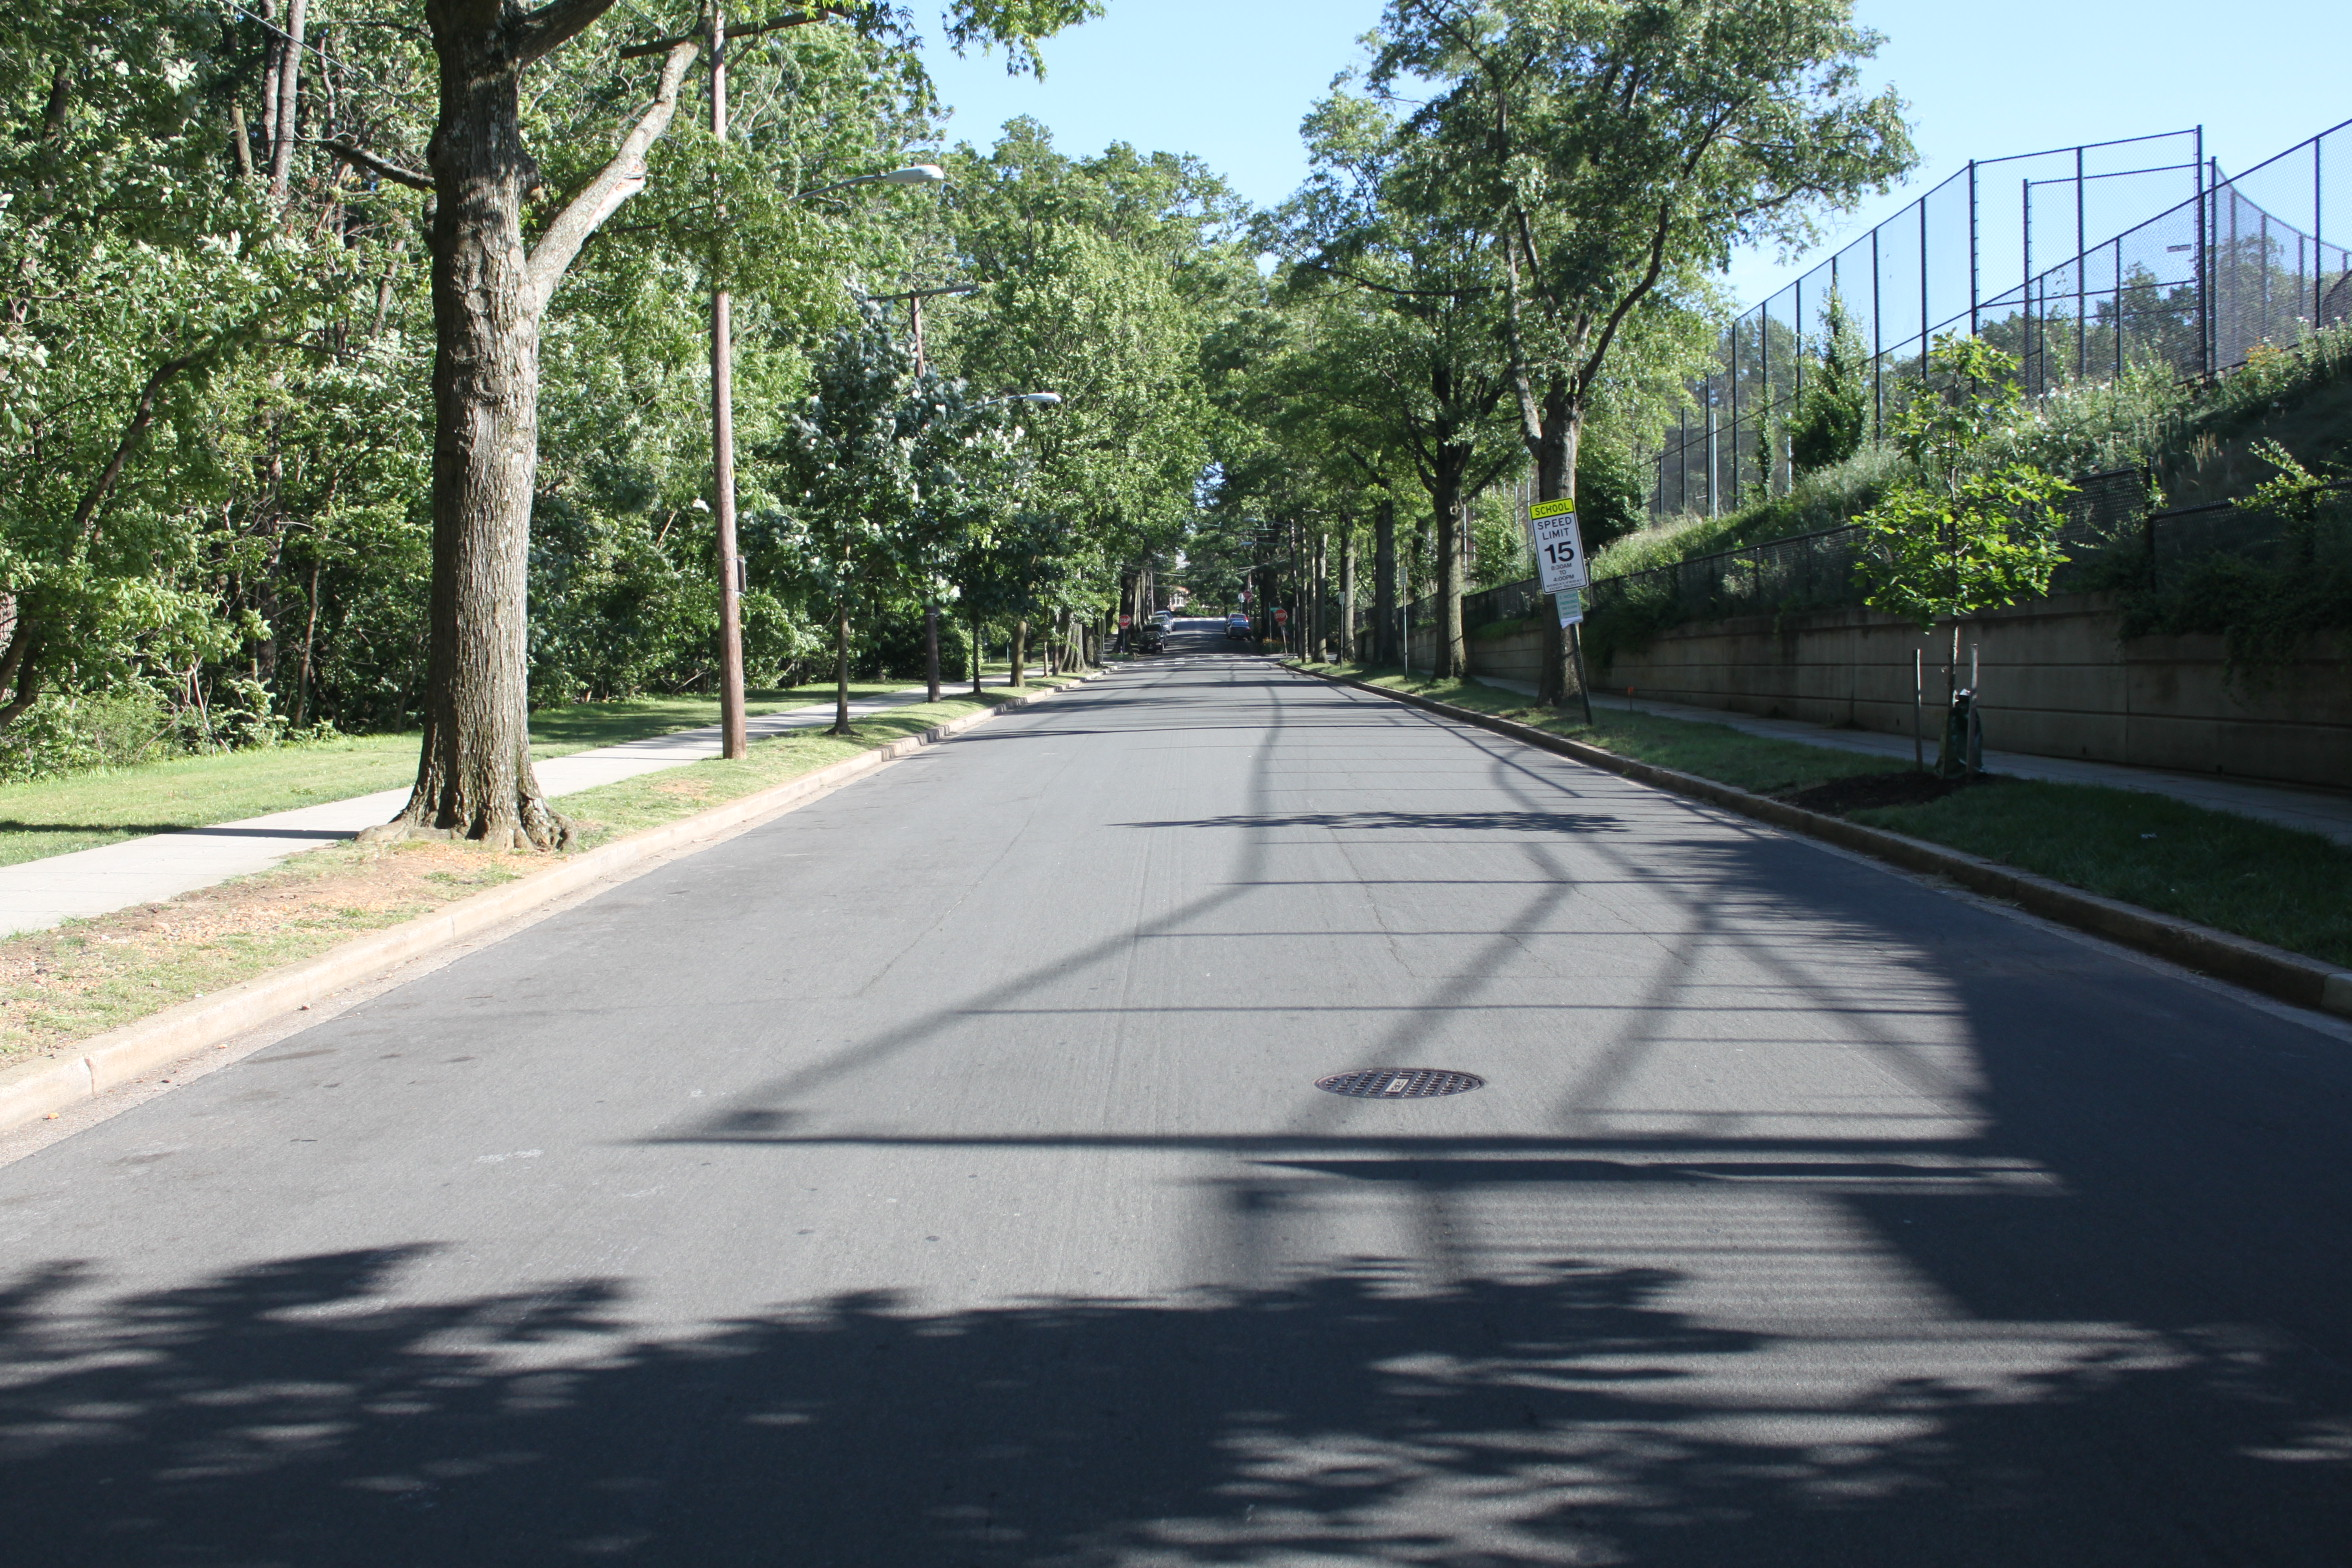 37th Street Next To Sidwell Friends